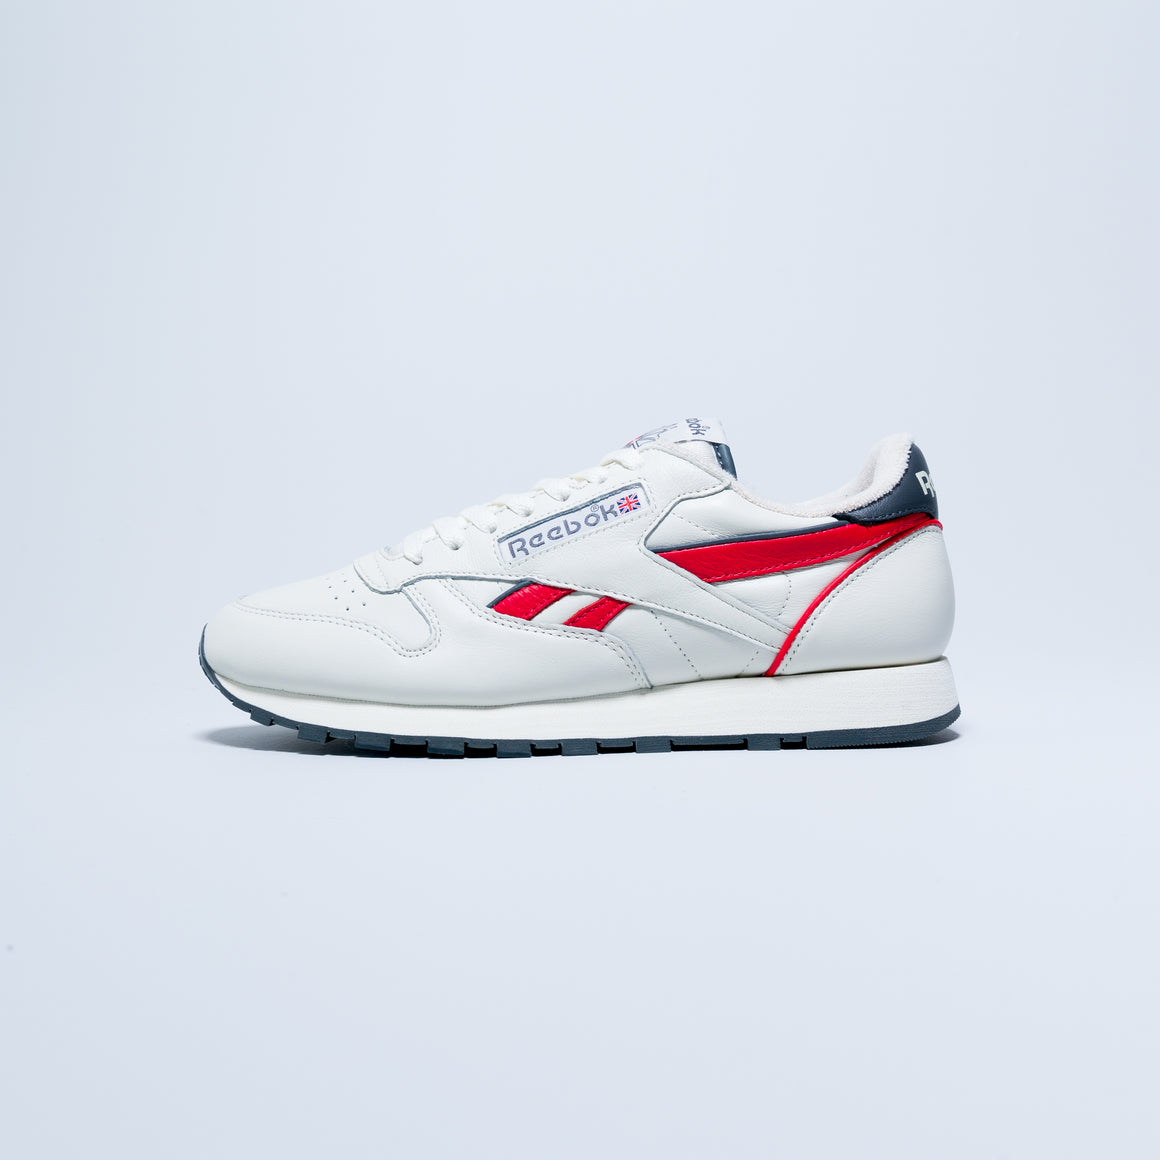 CL Leather MU - Chalk/Red/True Grey 7 - Up There